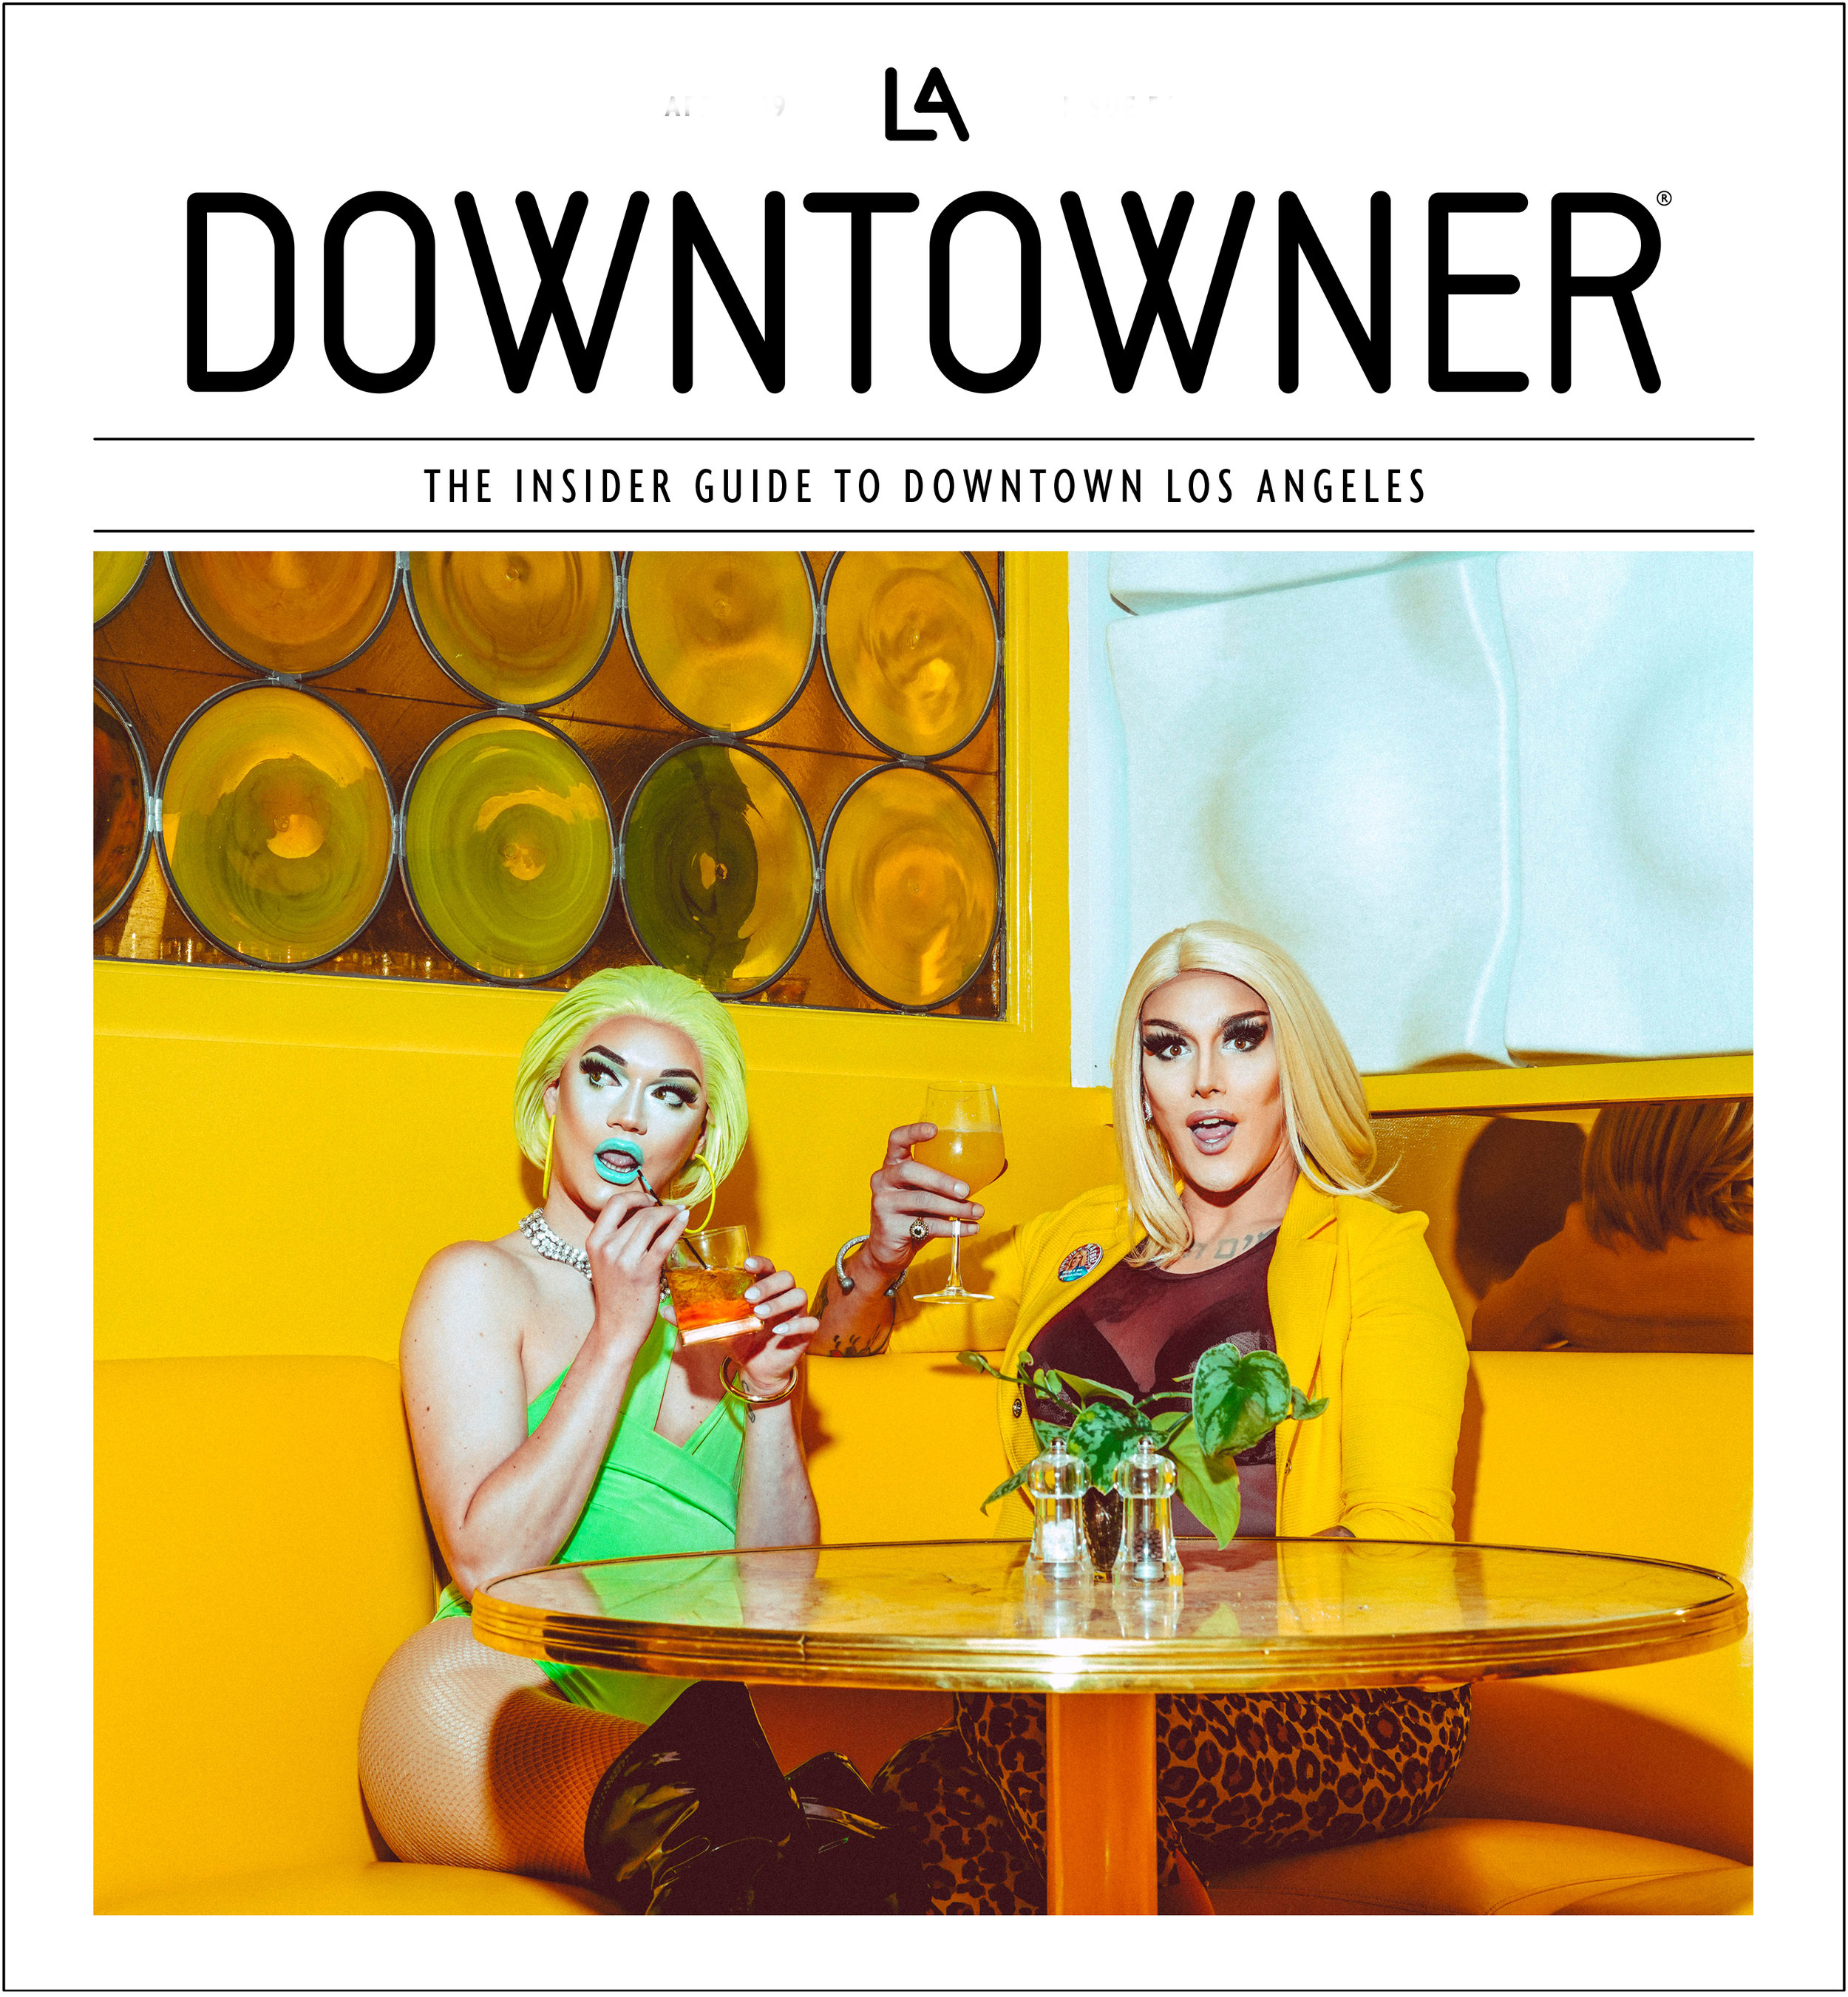 LA_Downtowner_Issue56_April-2019-1.jpg